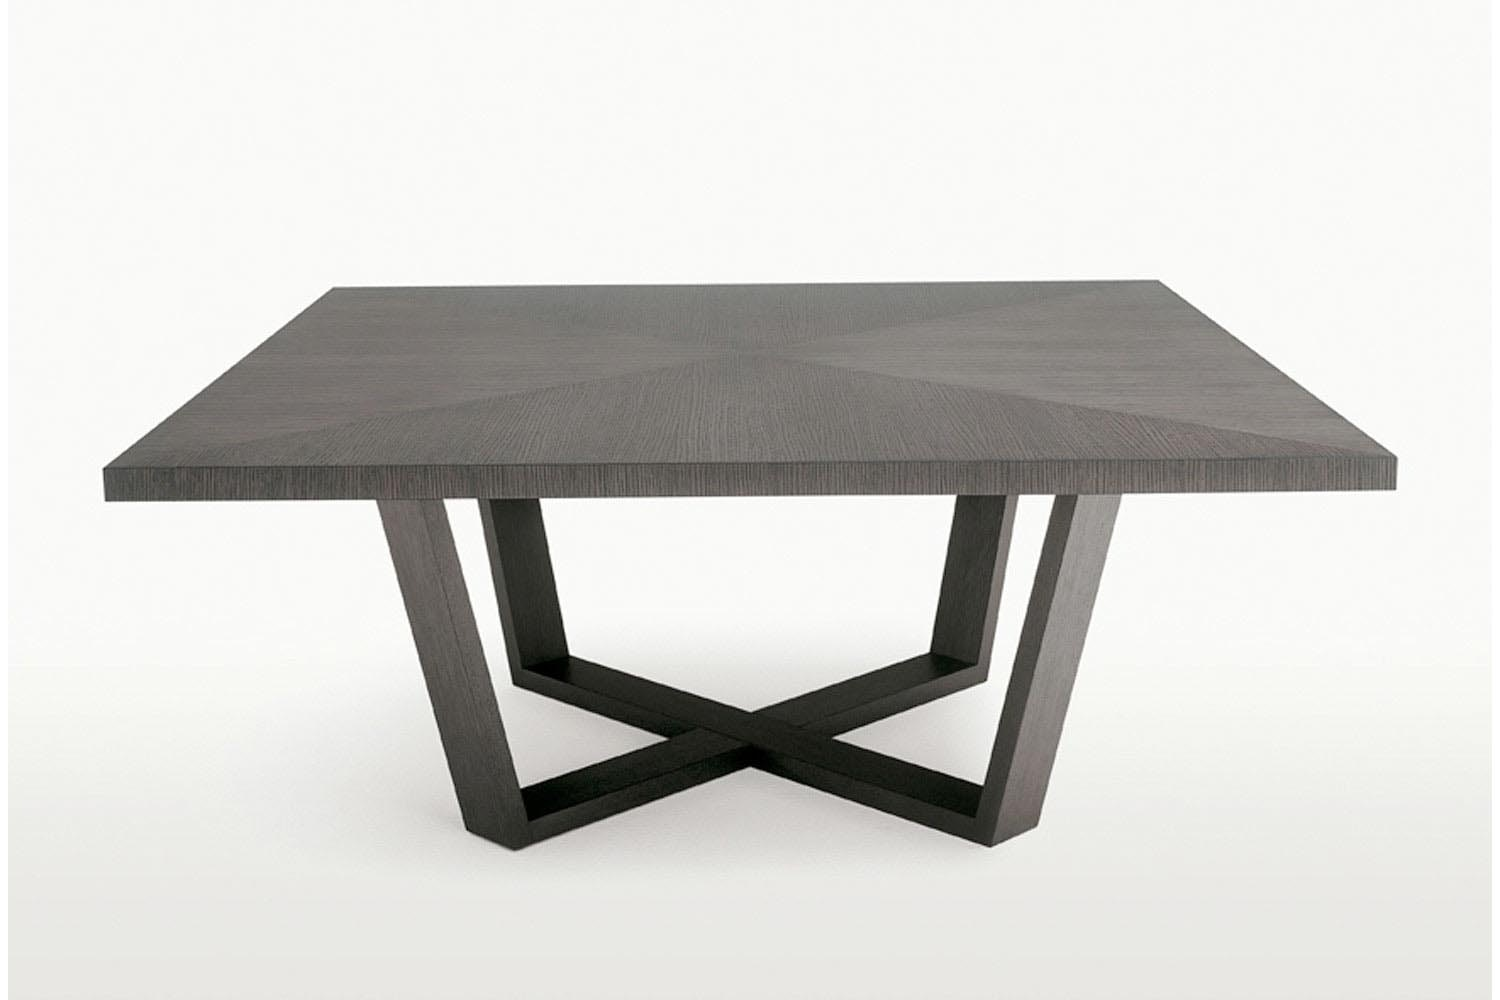 Xilos Table by Antonio Citterio for Maxalto